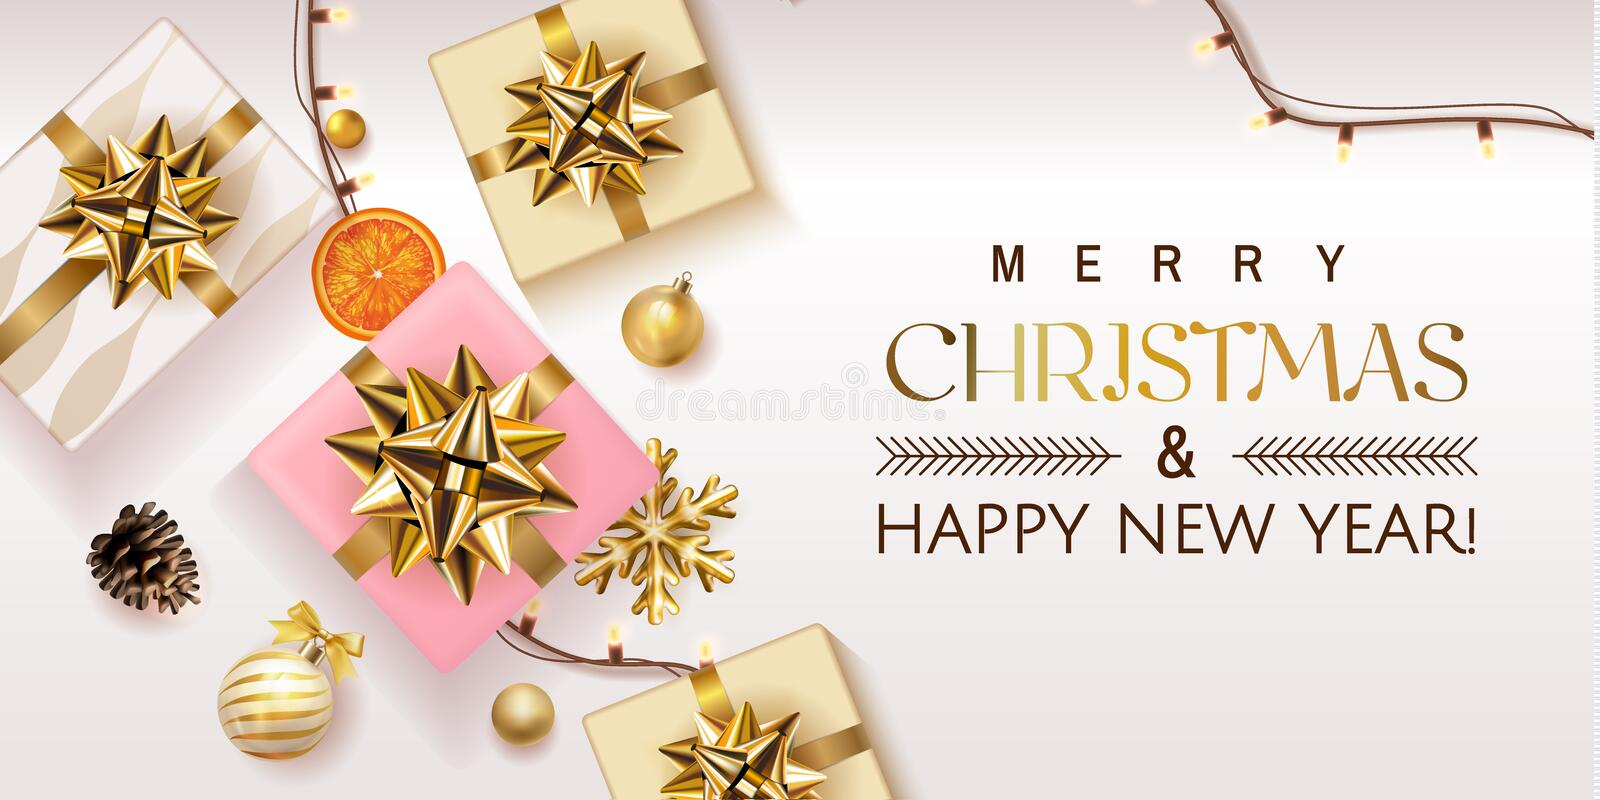 White Merry Christmas and Happy New Year Holiday soft poster illustration with realistic vector 3d objects, Christmas stock illustration